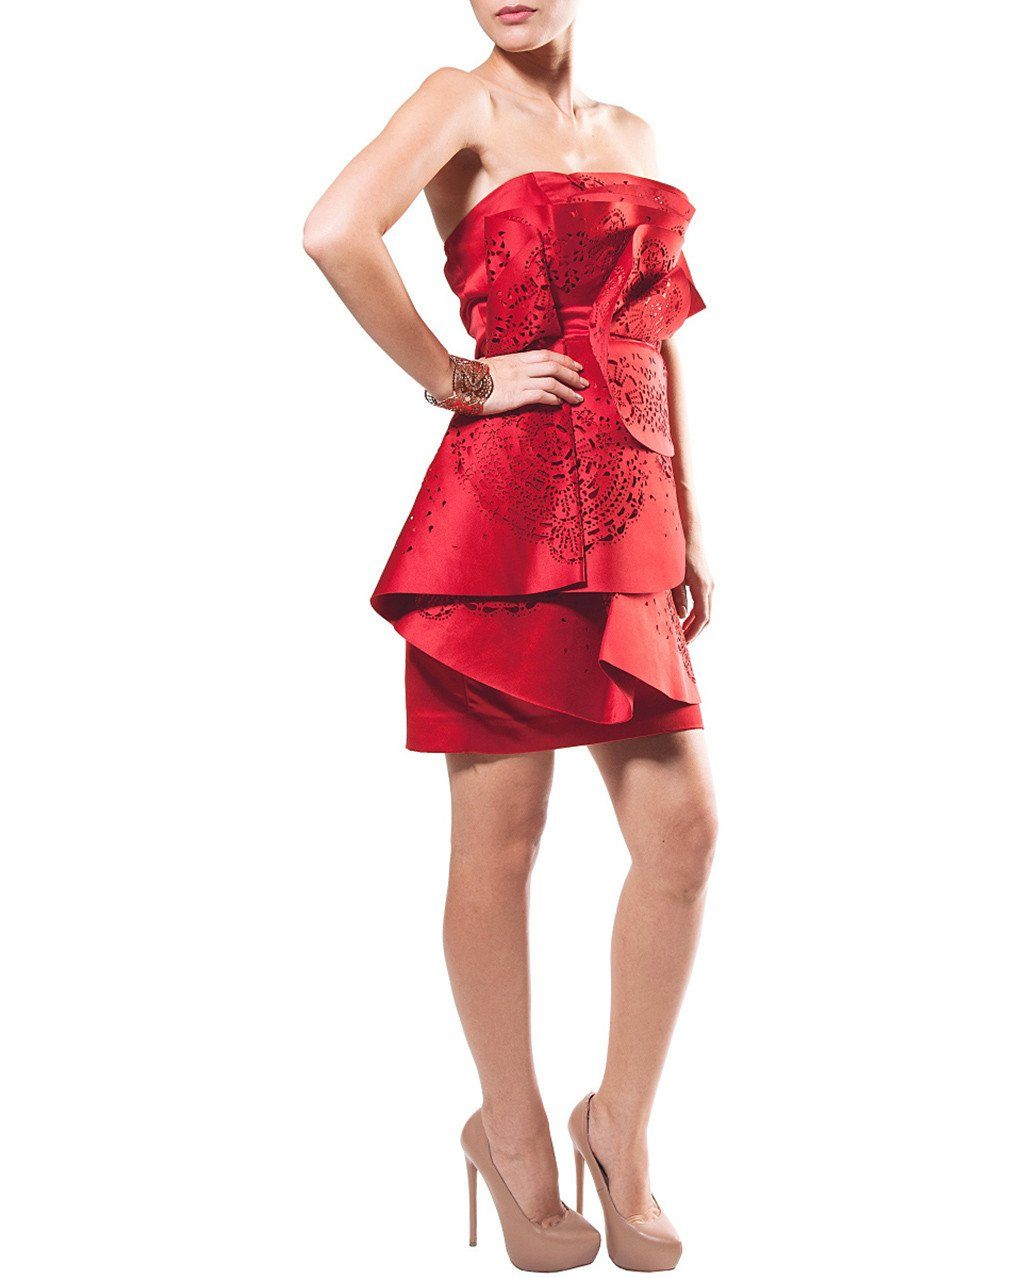 Strapless Origami Dress by Leedy - Rent or Buy It at Covetella